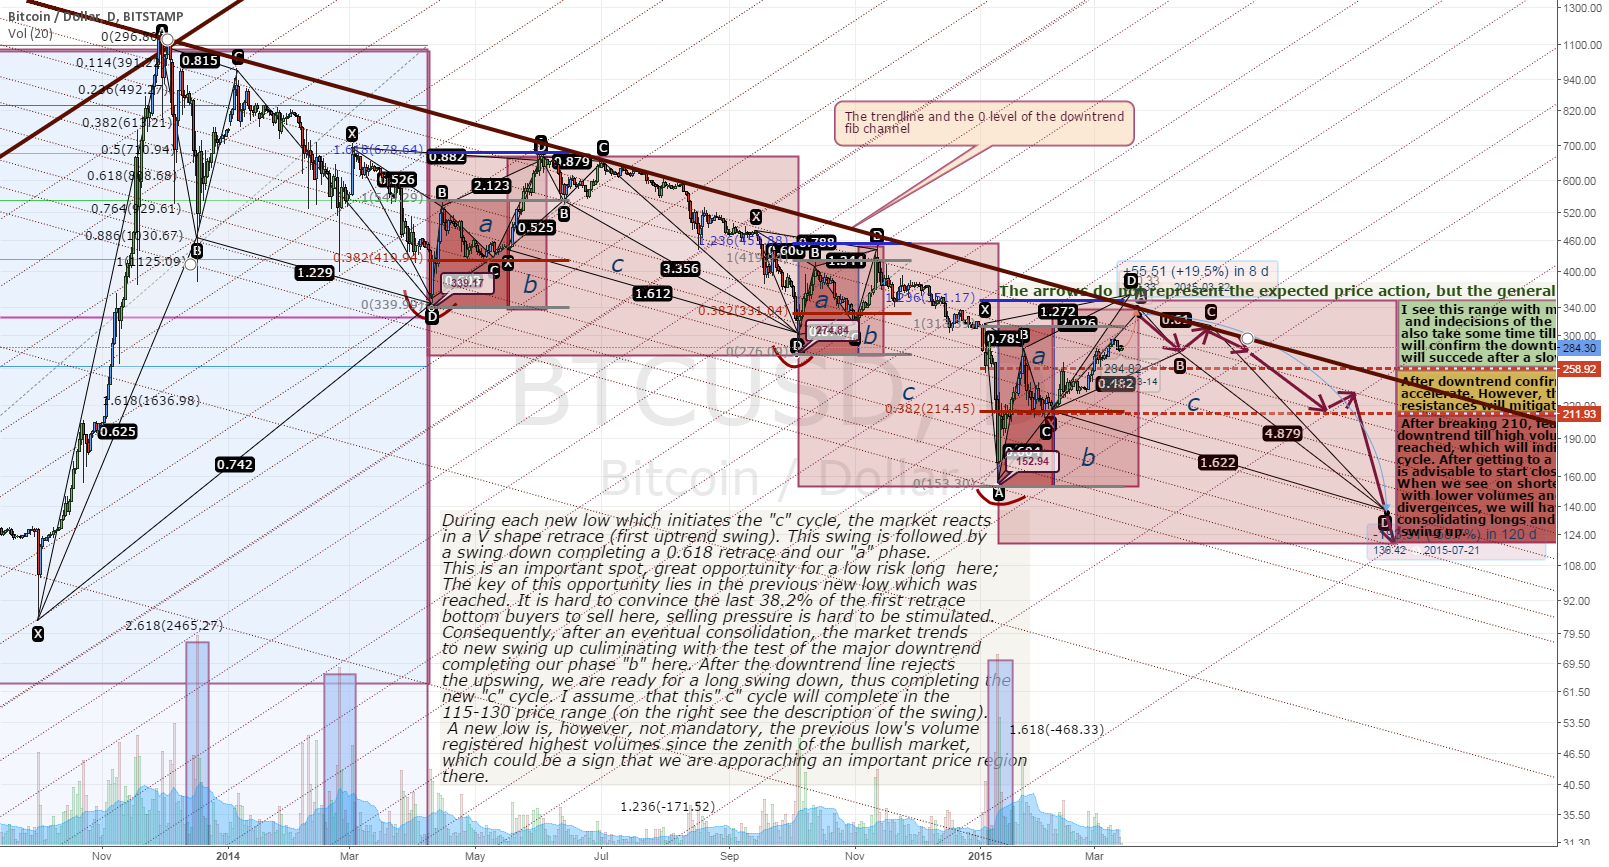 BTC 3 Year Trend Perspective